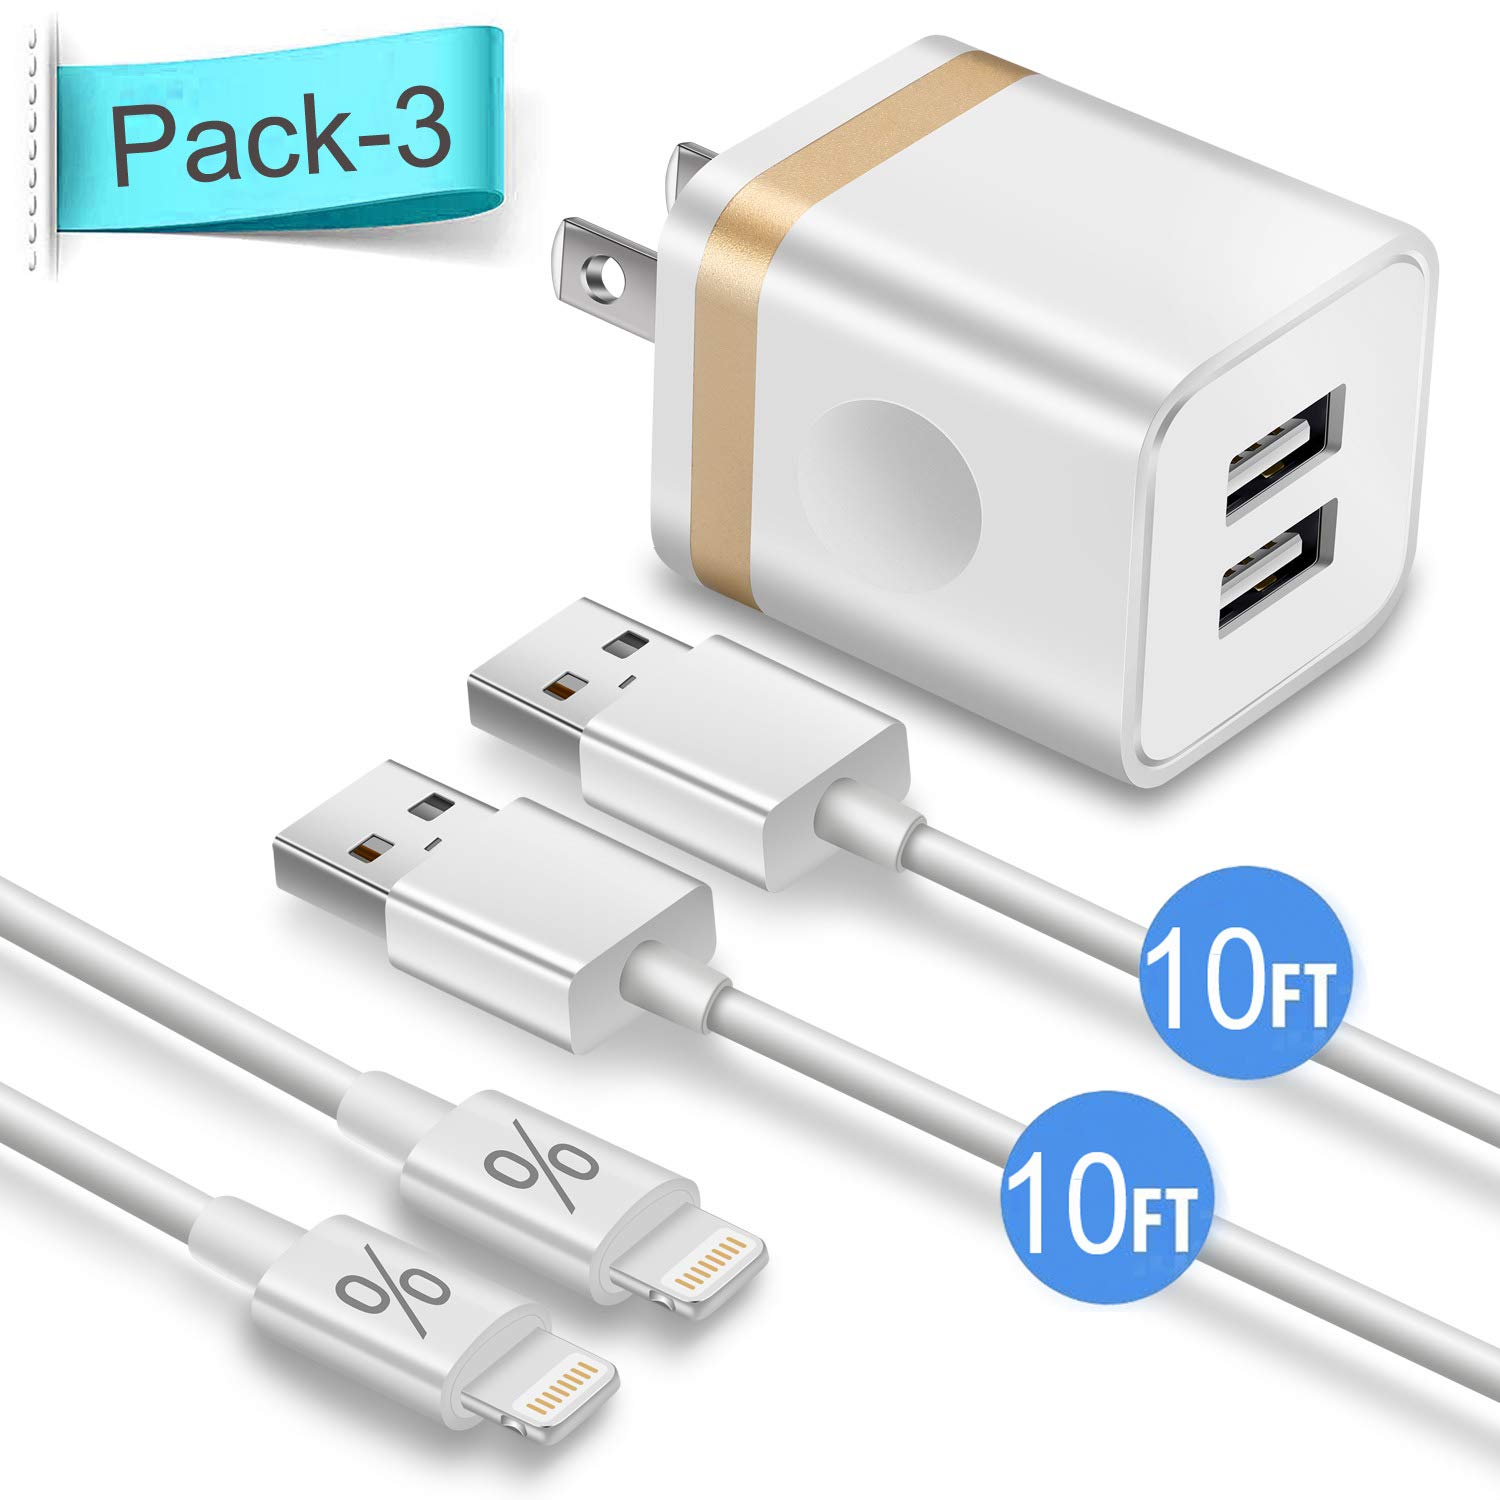 Phone Charger 10ft with Wall Plug, FIMARR 2-Pack 10-Feet Long Charging Cable and Dual USB Wall Charger Adapter Block (2.1A/5V) Compatible with iPhone ...